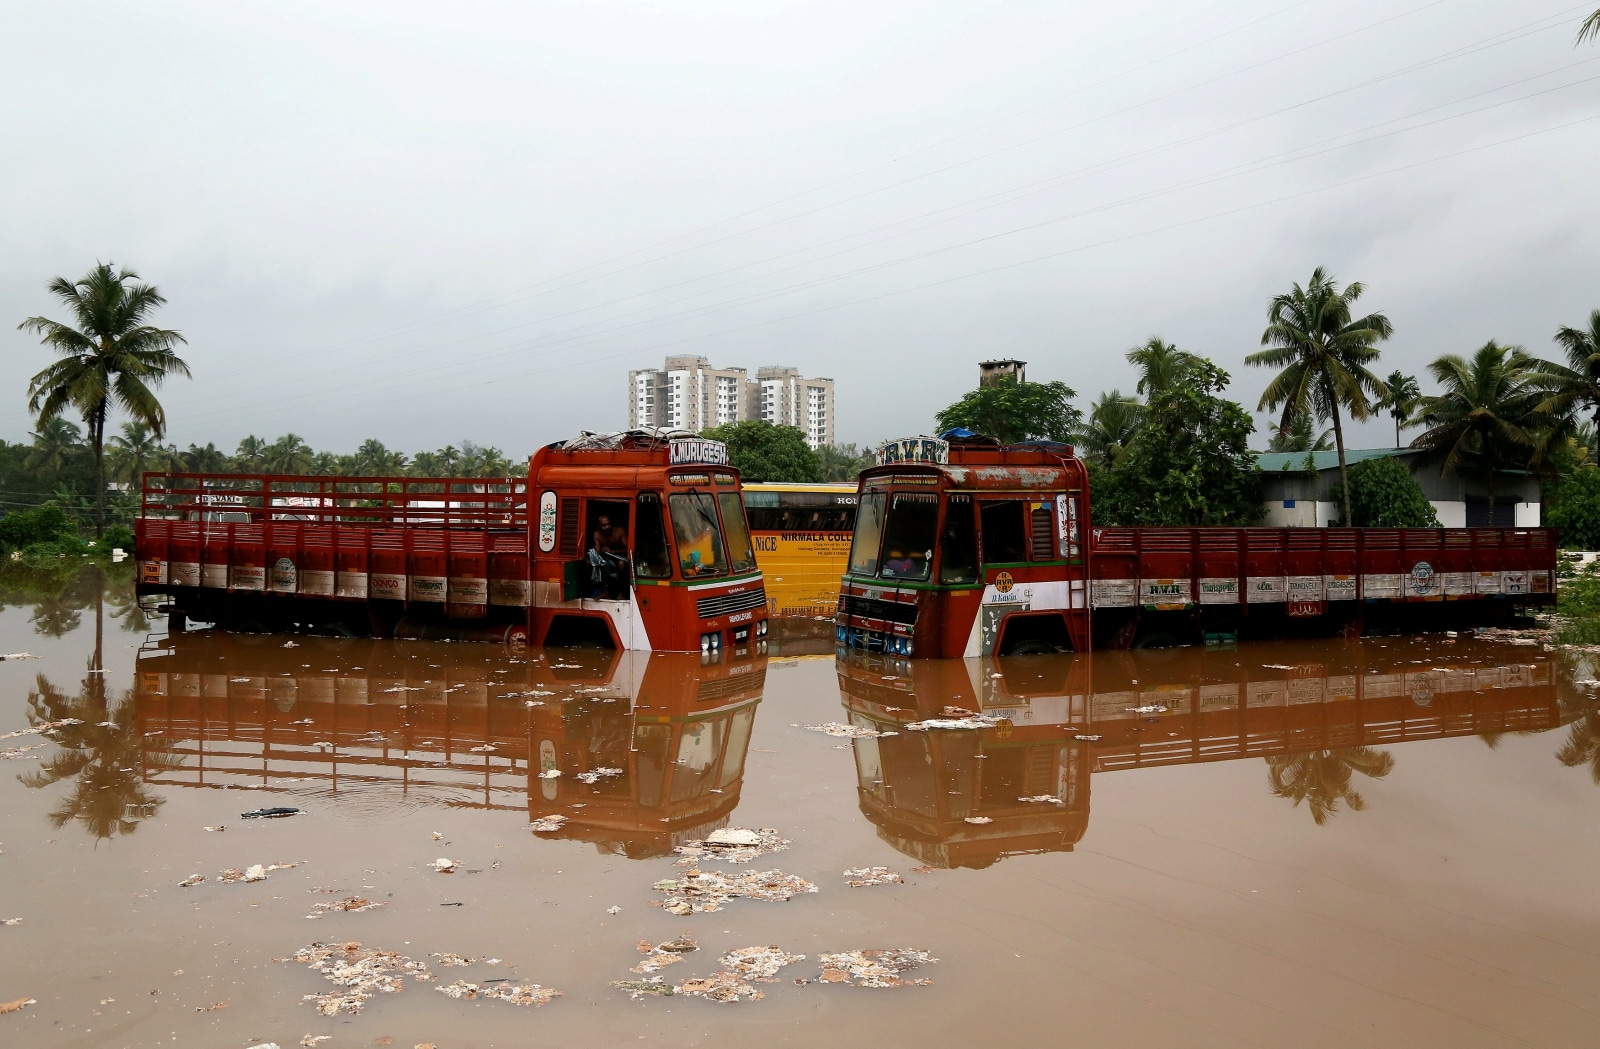 Partially submerged trucks are surrounded by floodwaters at a parking bay after the opening of Idamalayar, Cheruthoni and Mullaperiyar dam gates following heavy rains, on the outskirts of Kochi, Kerala. August 16, 2018. REUTERS/Sivaram V/File Photo